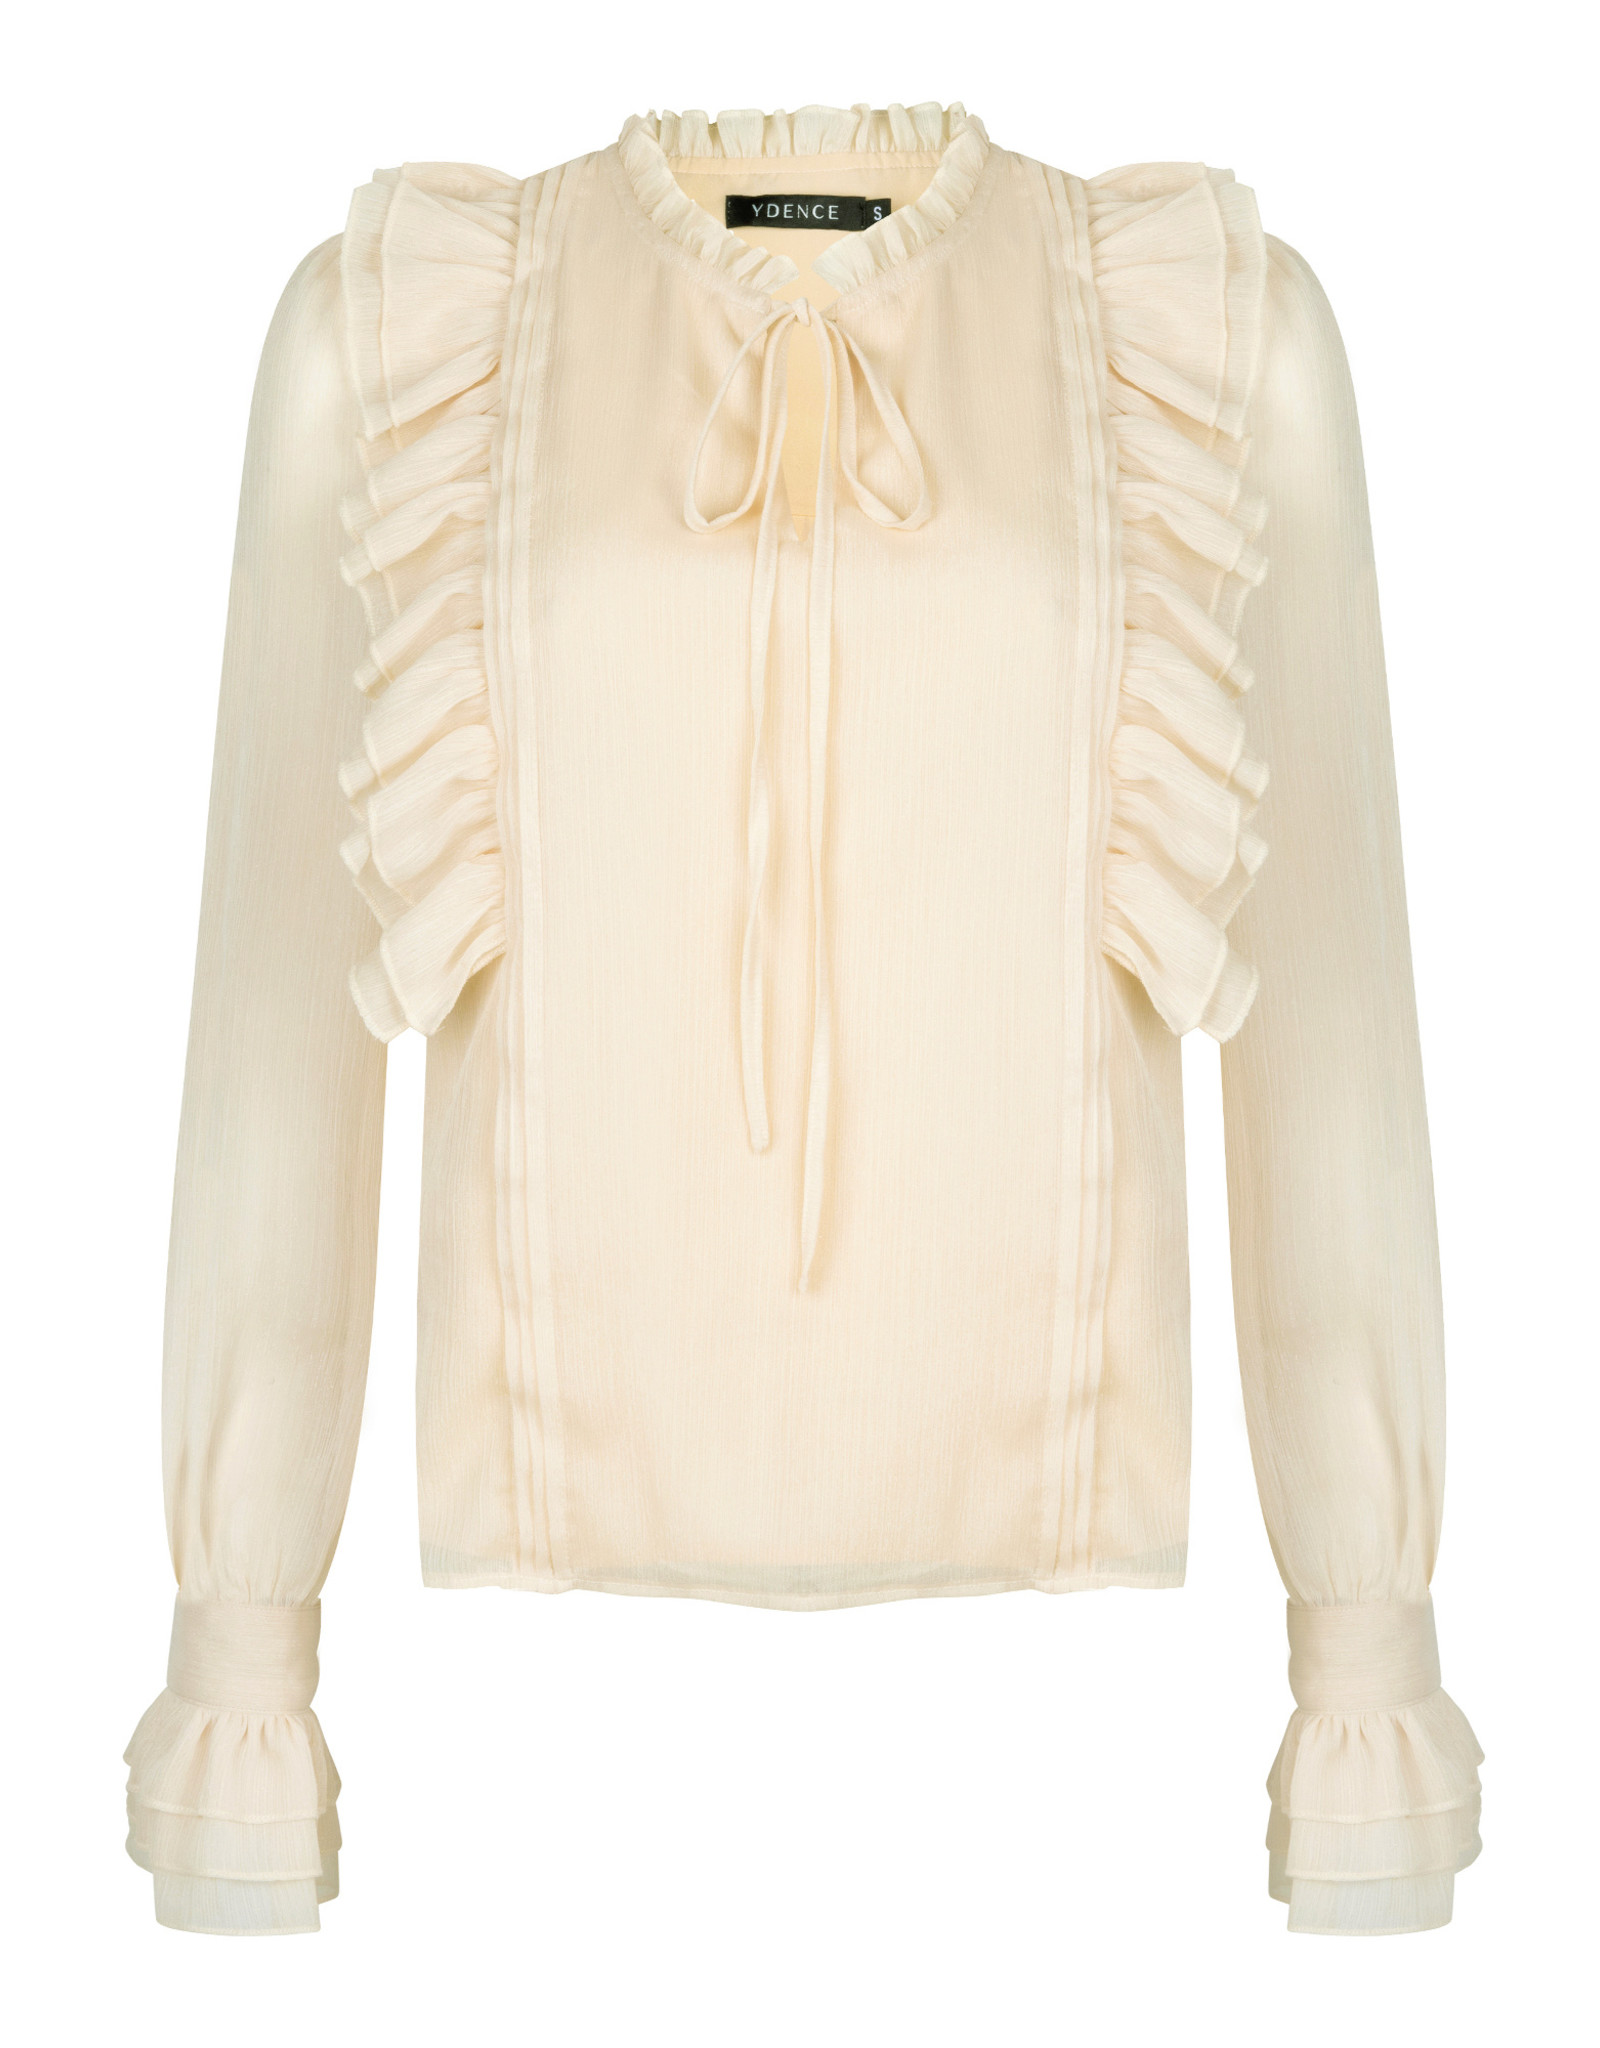 Ydence Blouse - Charlie - cream